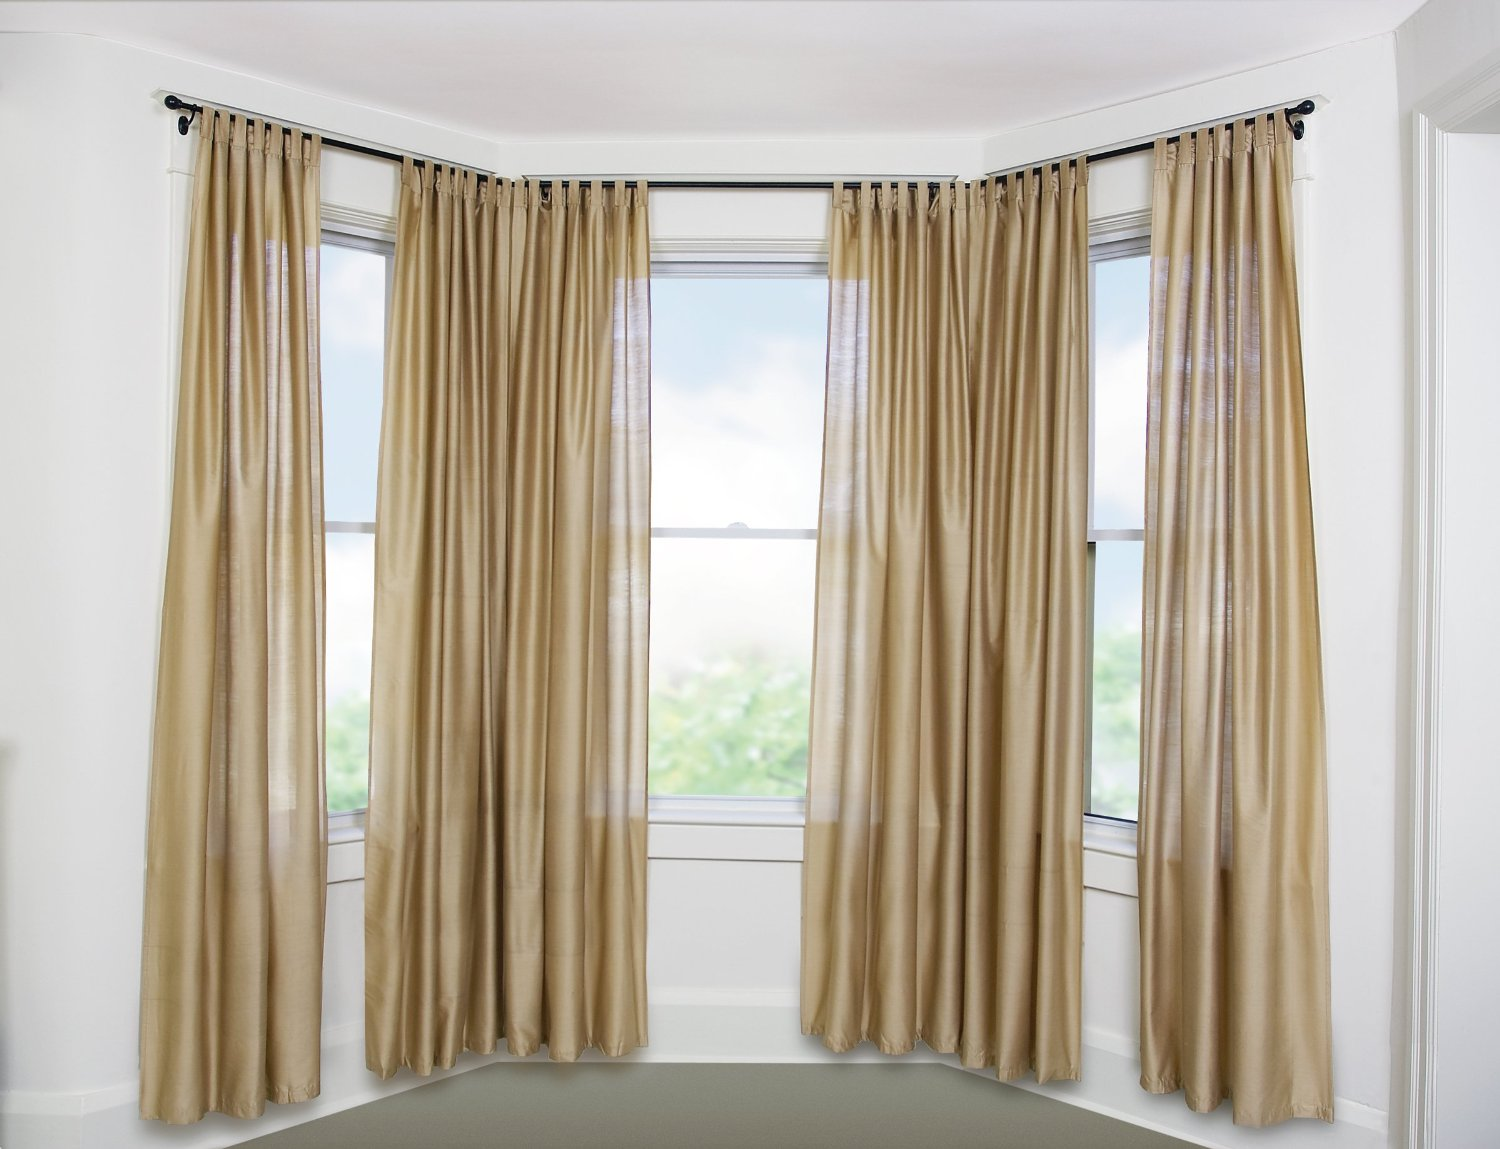 Image of: Curtain Accessories Rods